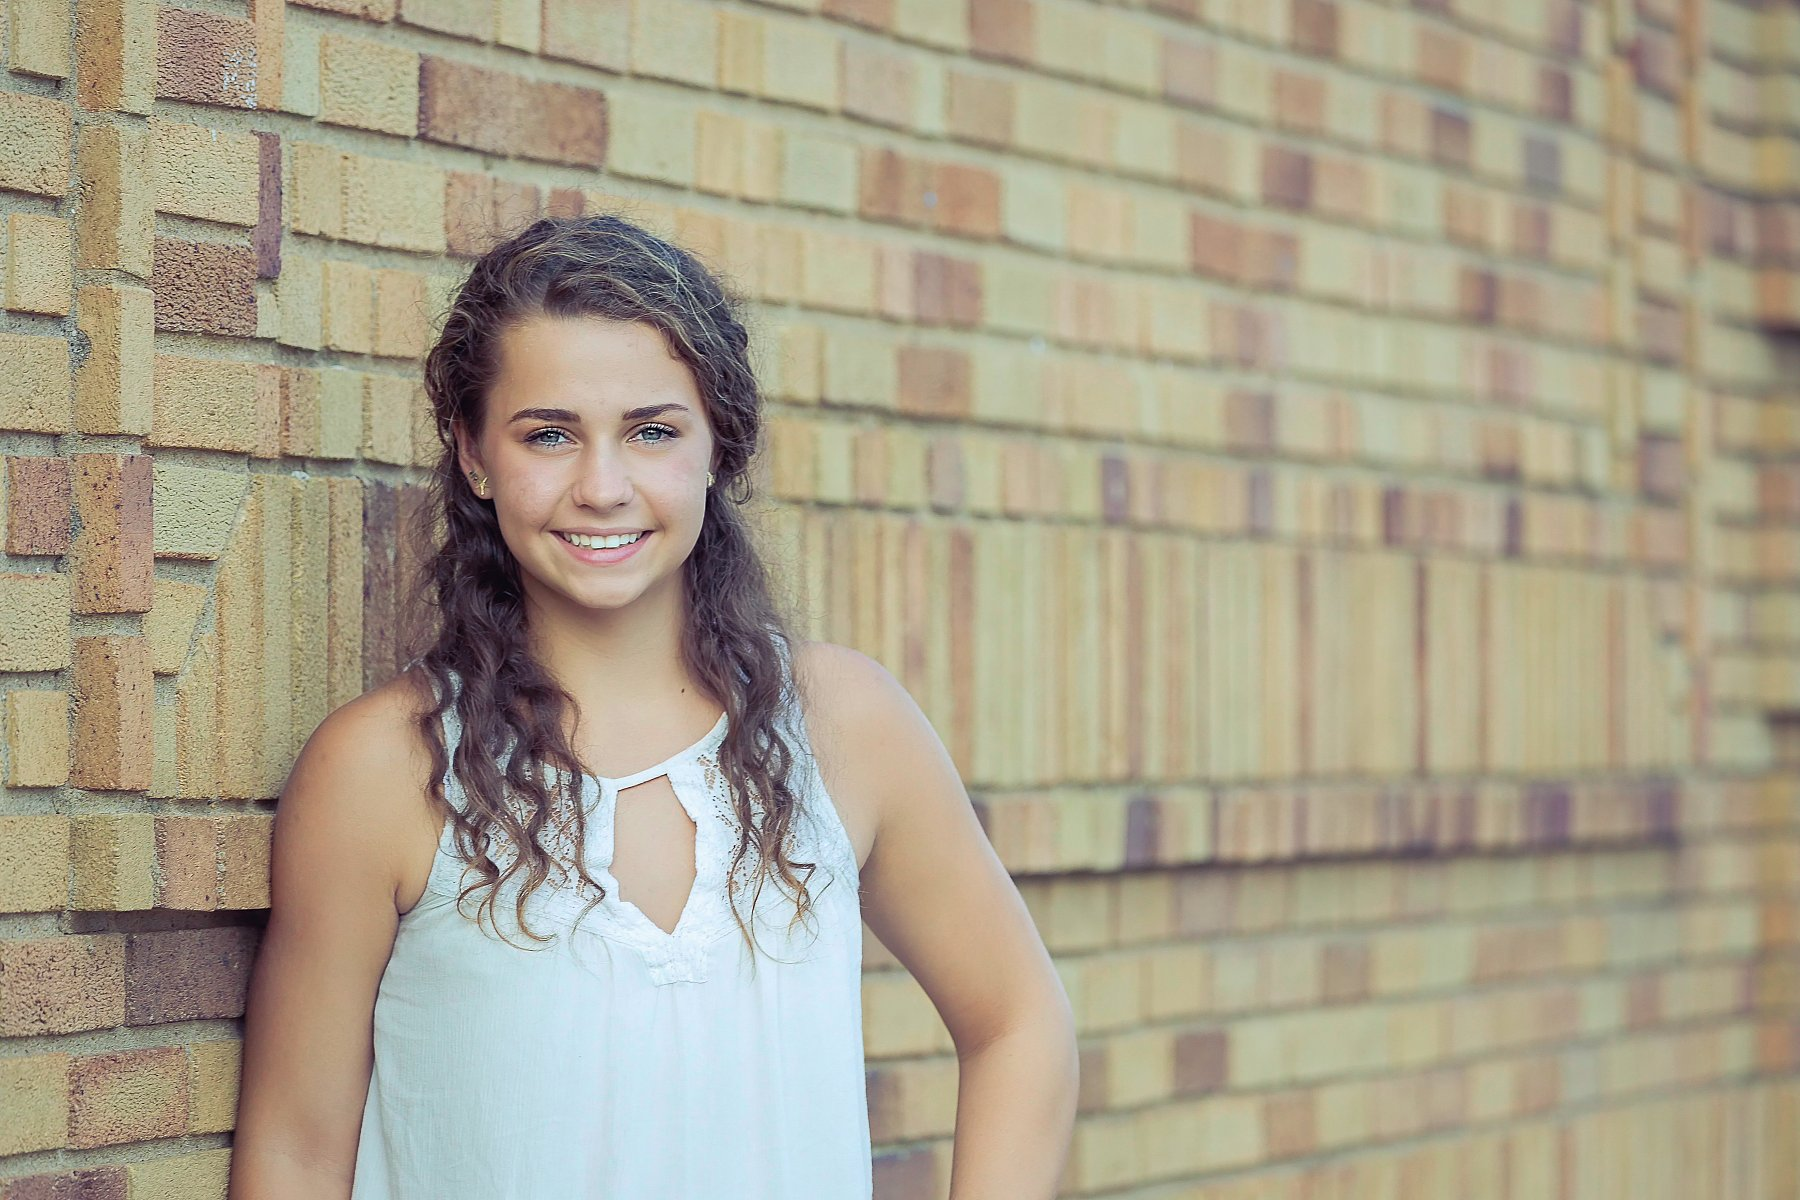 Chester County, PA Premier Senior Portrait Photographer